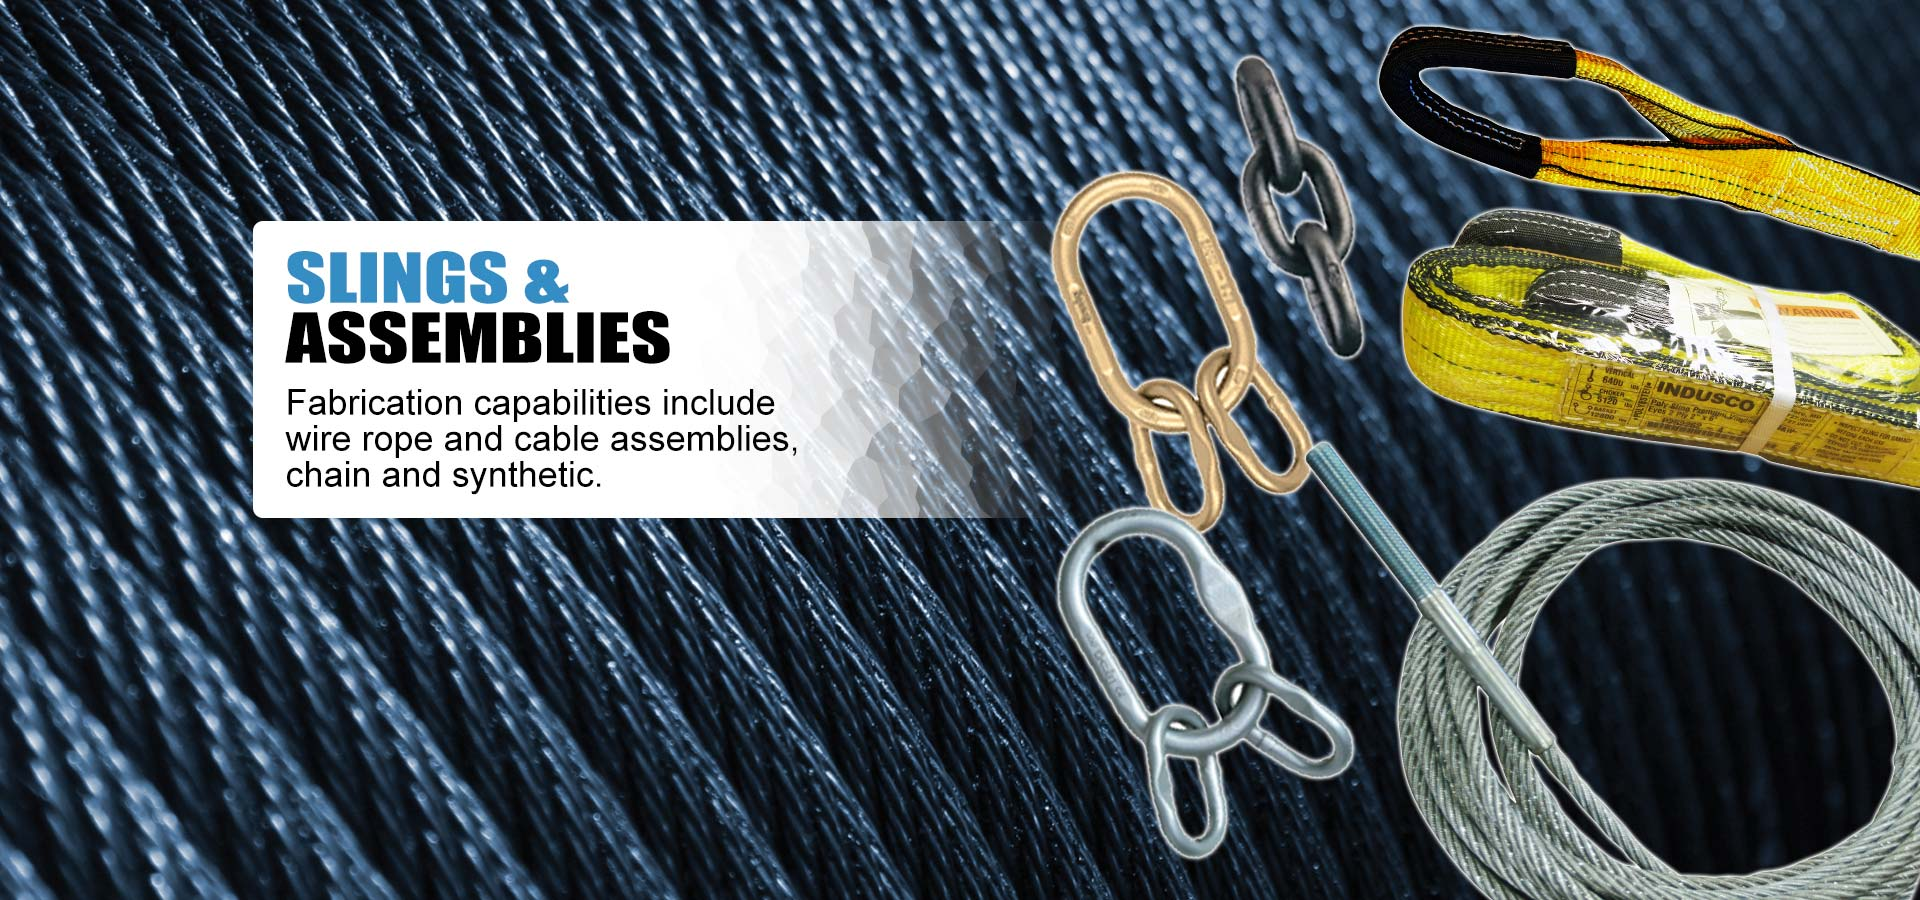 Indusco Slings & Assemblies: Wire Rope Slings, Synthetic Slings, Chain Slings